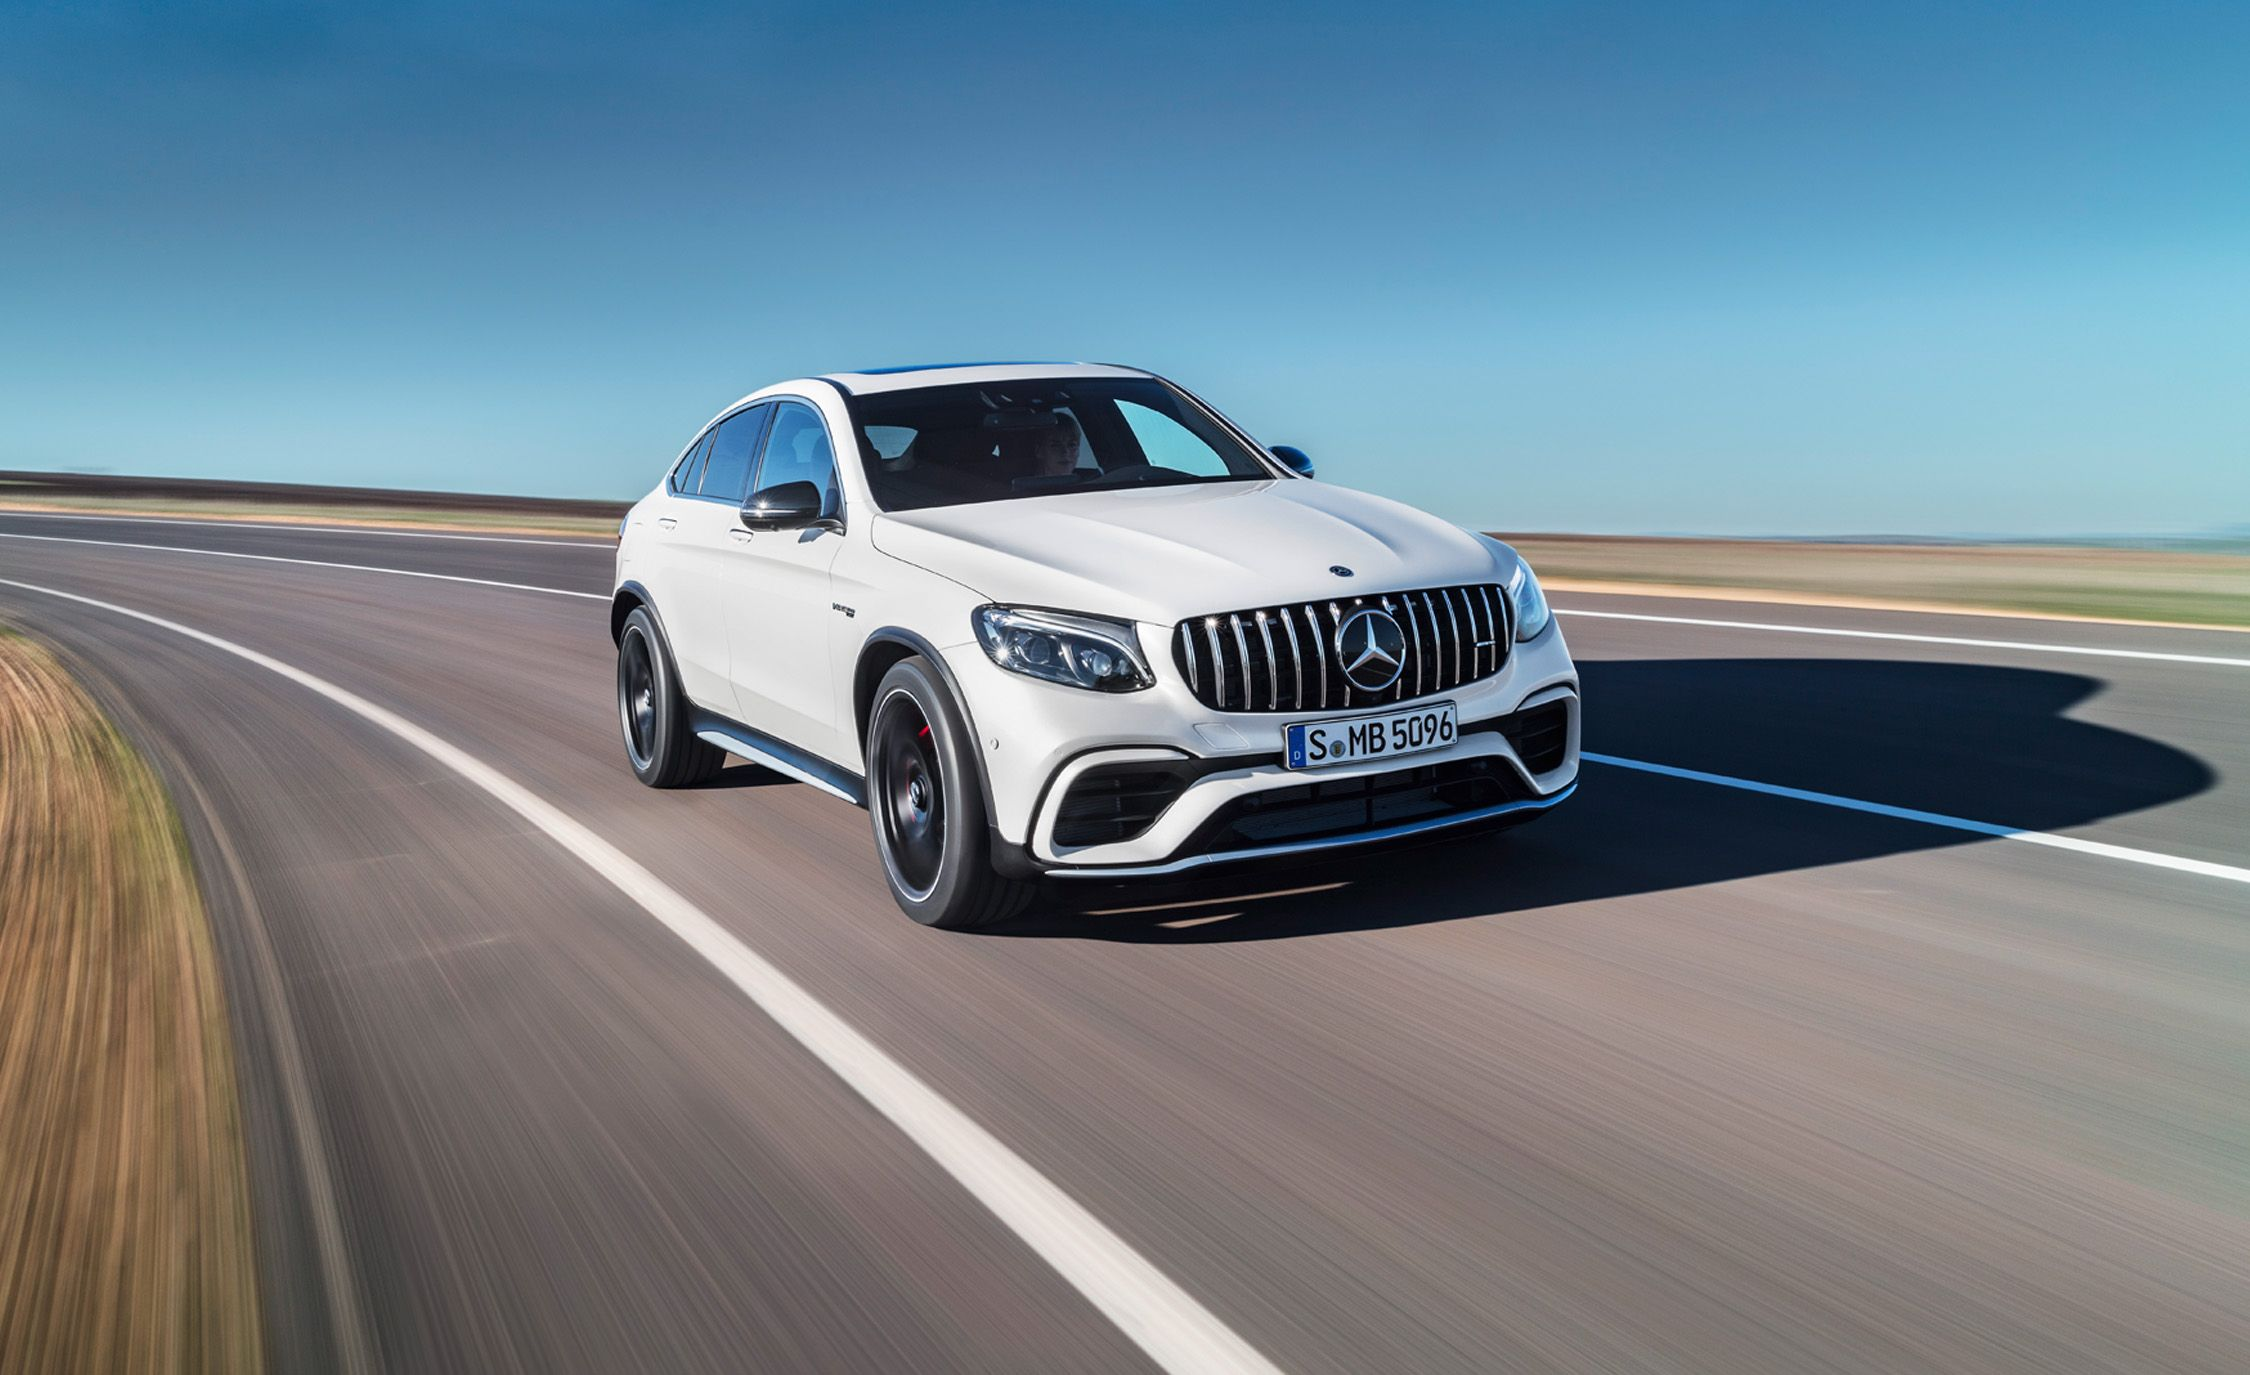 https://hips.hearstapps.com/amv-prod-cad-assets.s3.amazonaws.com/images/17q2/678296/2018-mercedes-amg-glc63-coupe-photos-and-info-news-car-and-driver-photo-678341-s-original.jpg